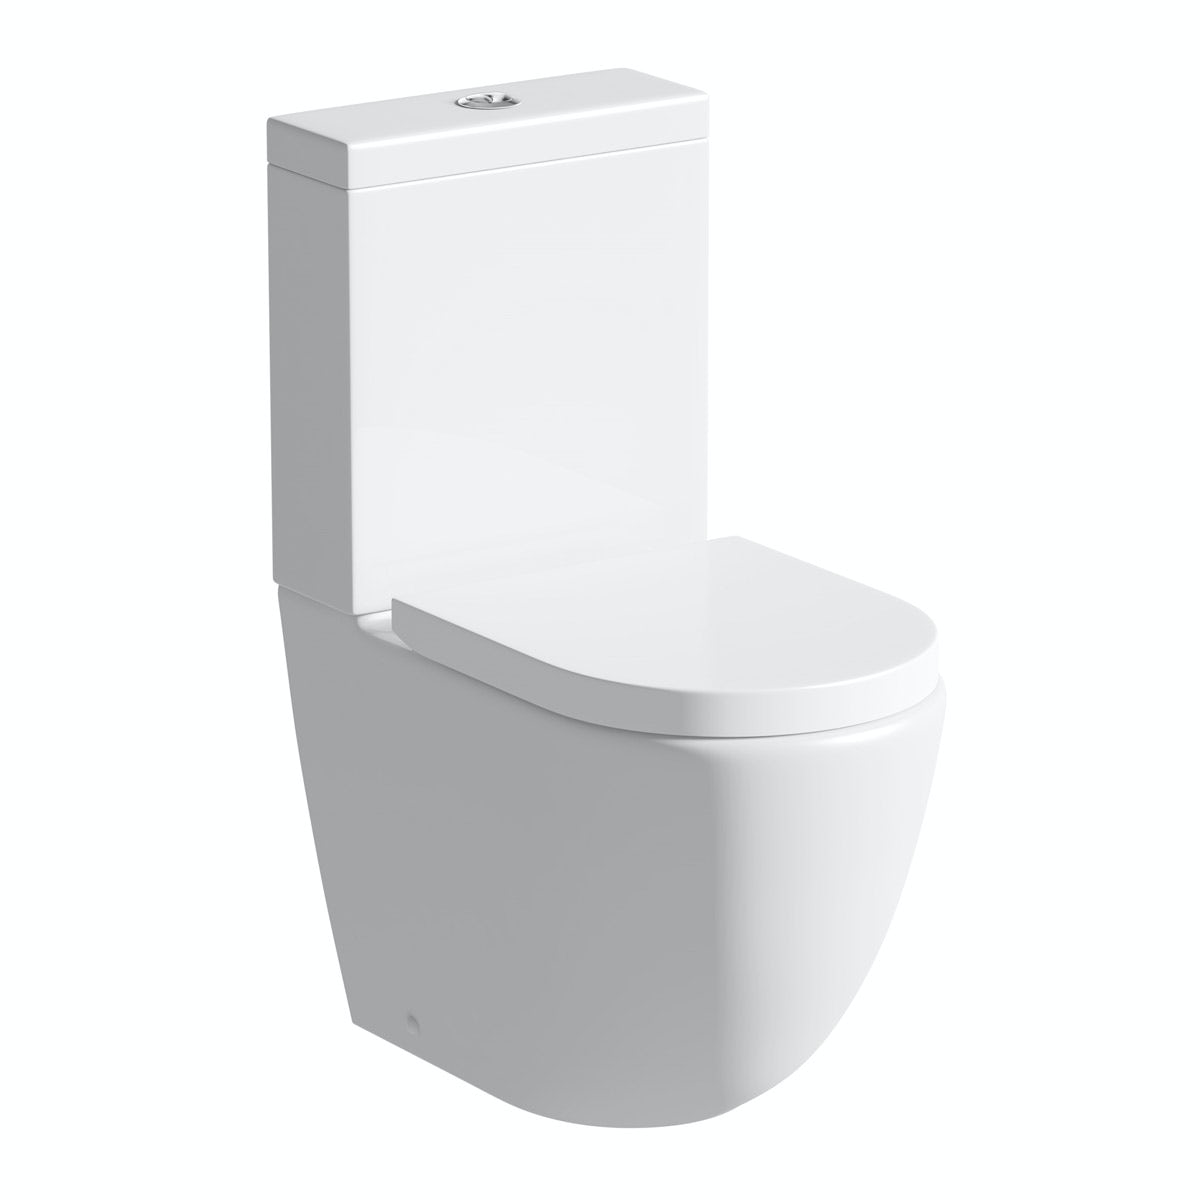 Mode Harrison rimless close coupled toilet with soft close seat with pan connector